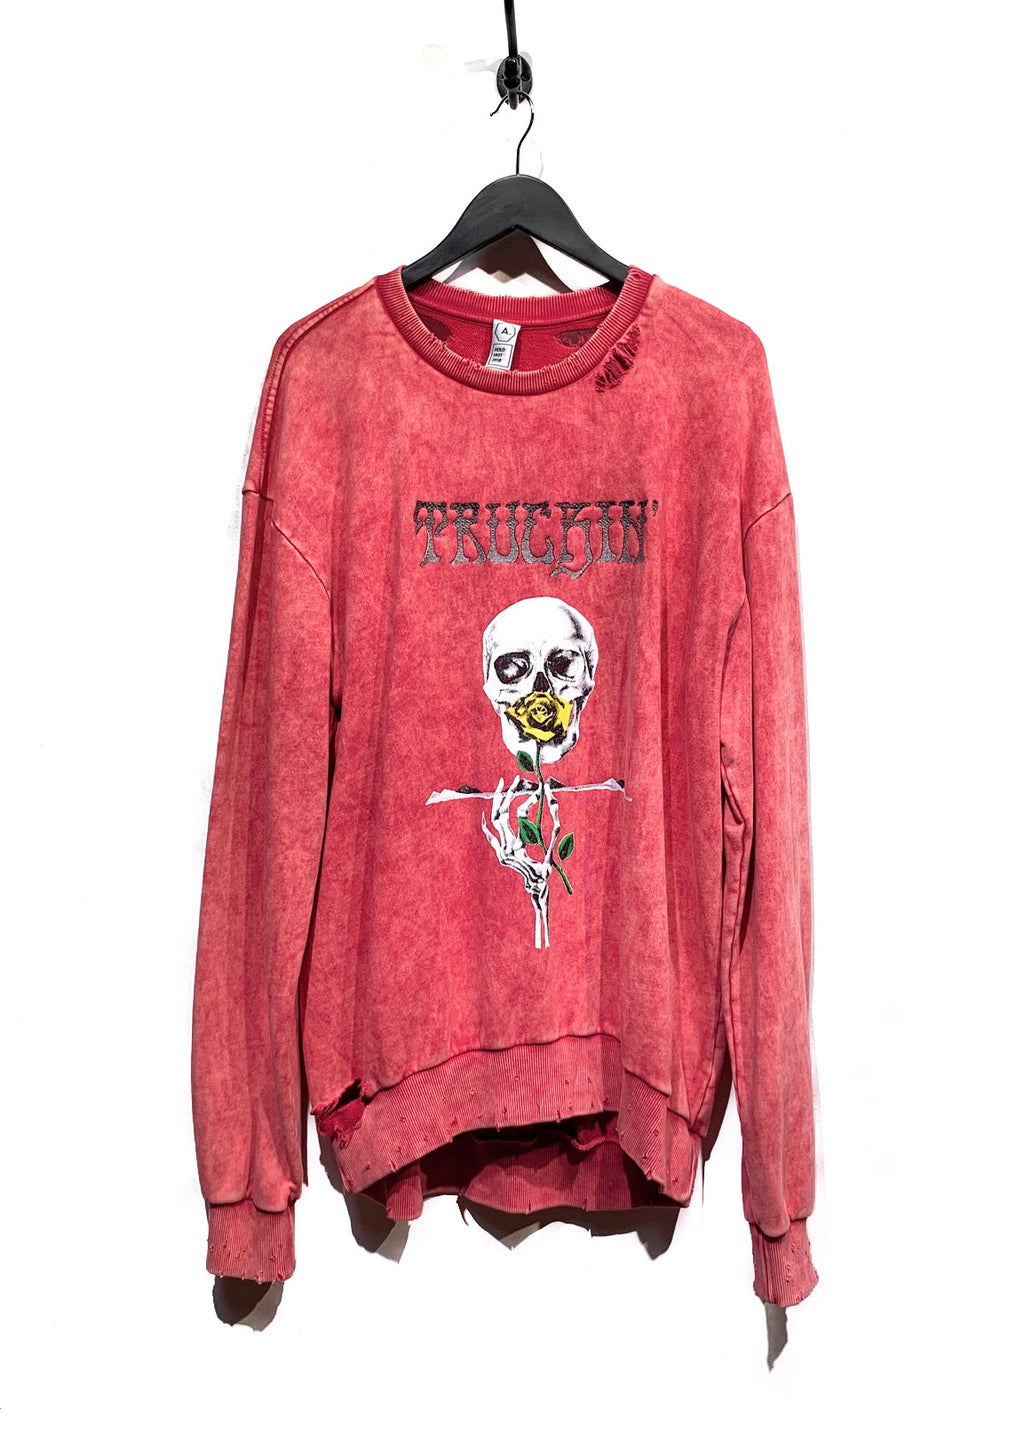 "Alchemist Hold Fast 2018 Pink ""Truckin"" Embroidered Skull Print Destroyed Sweatshirt"